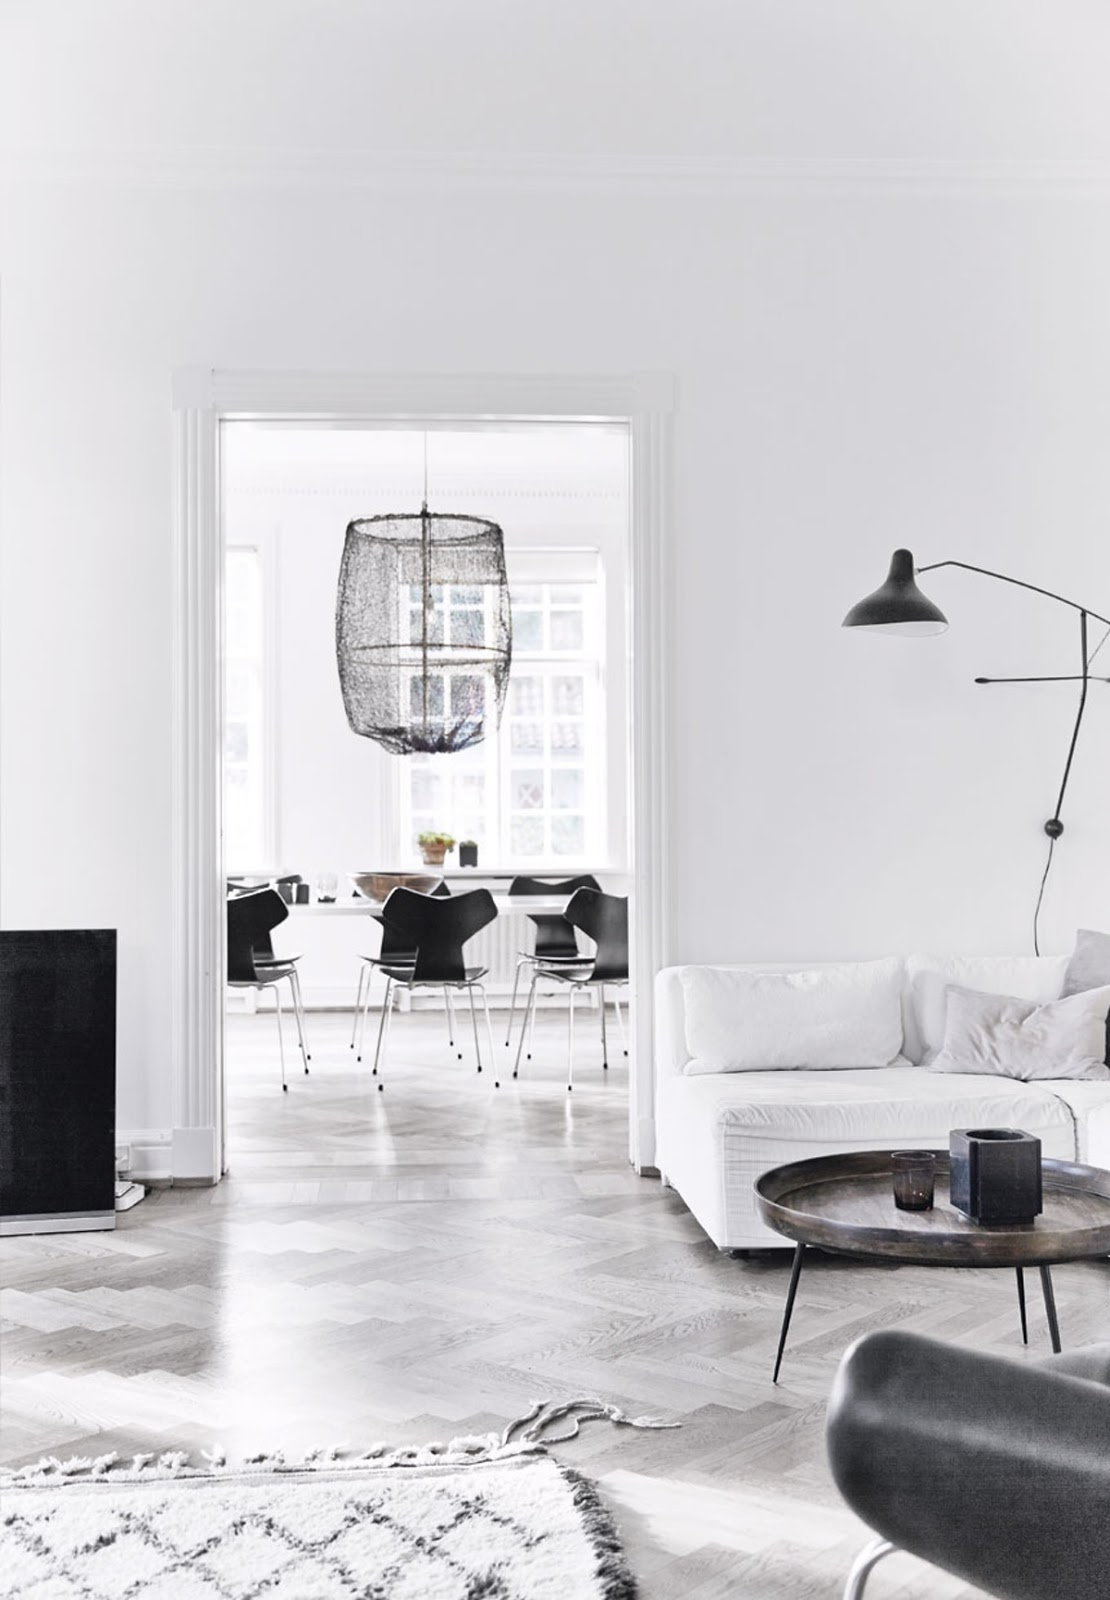 Decordemon: hanne berzant's stylish villa in denmark